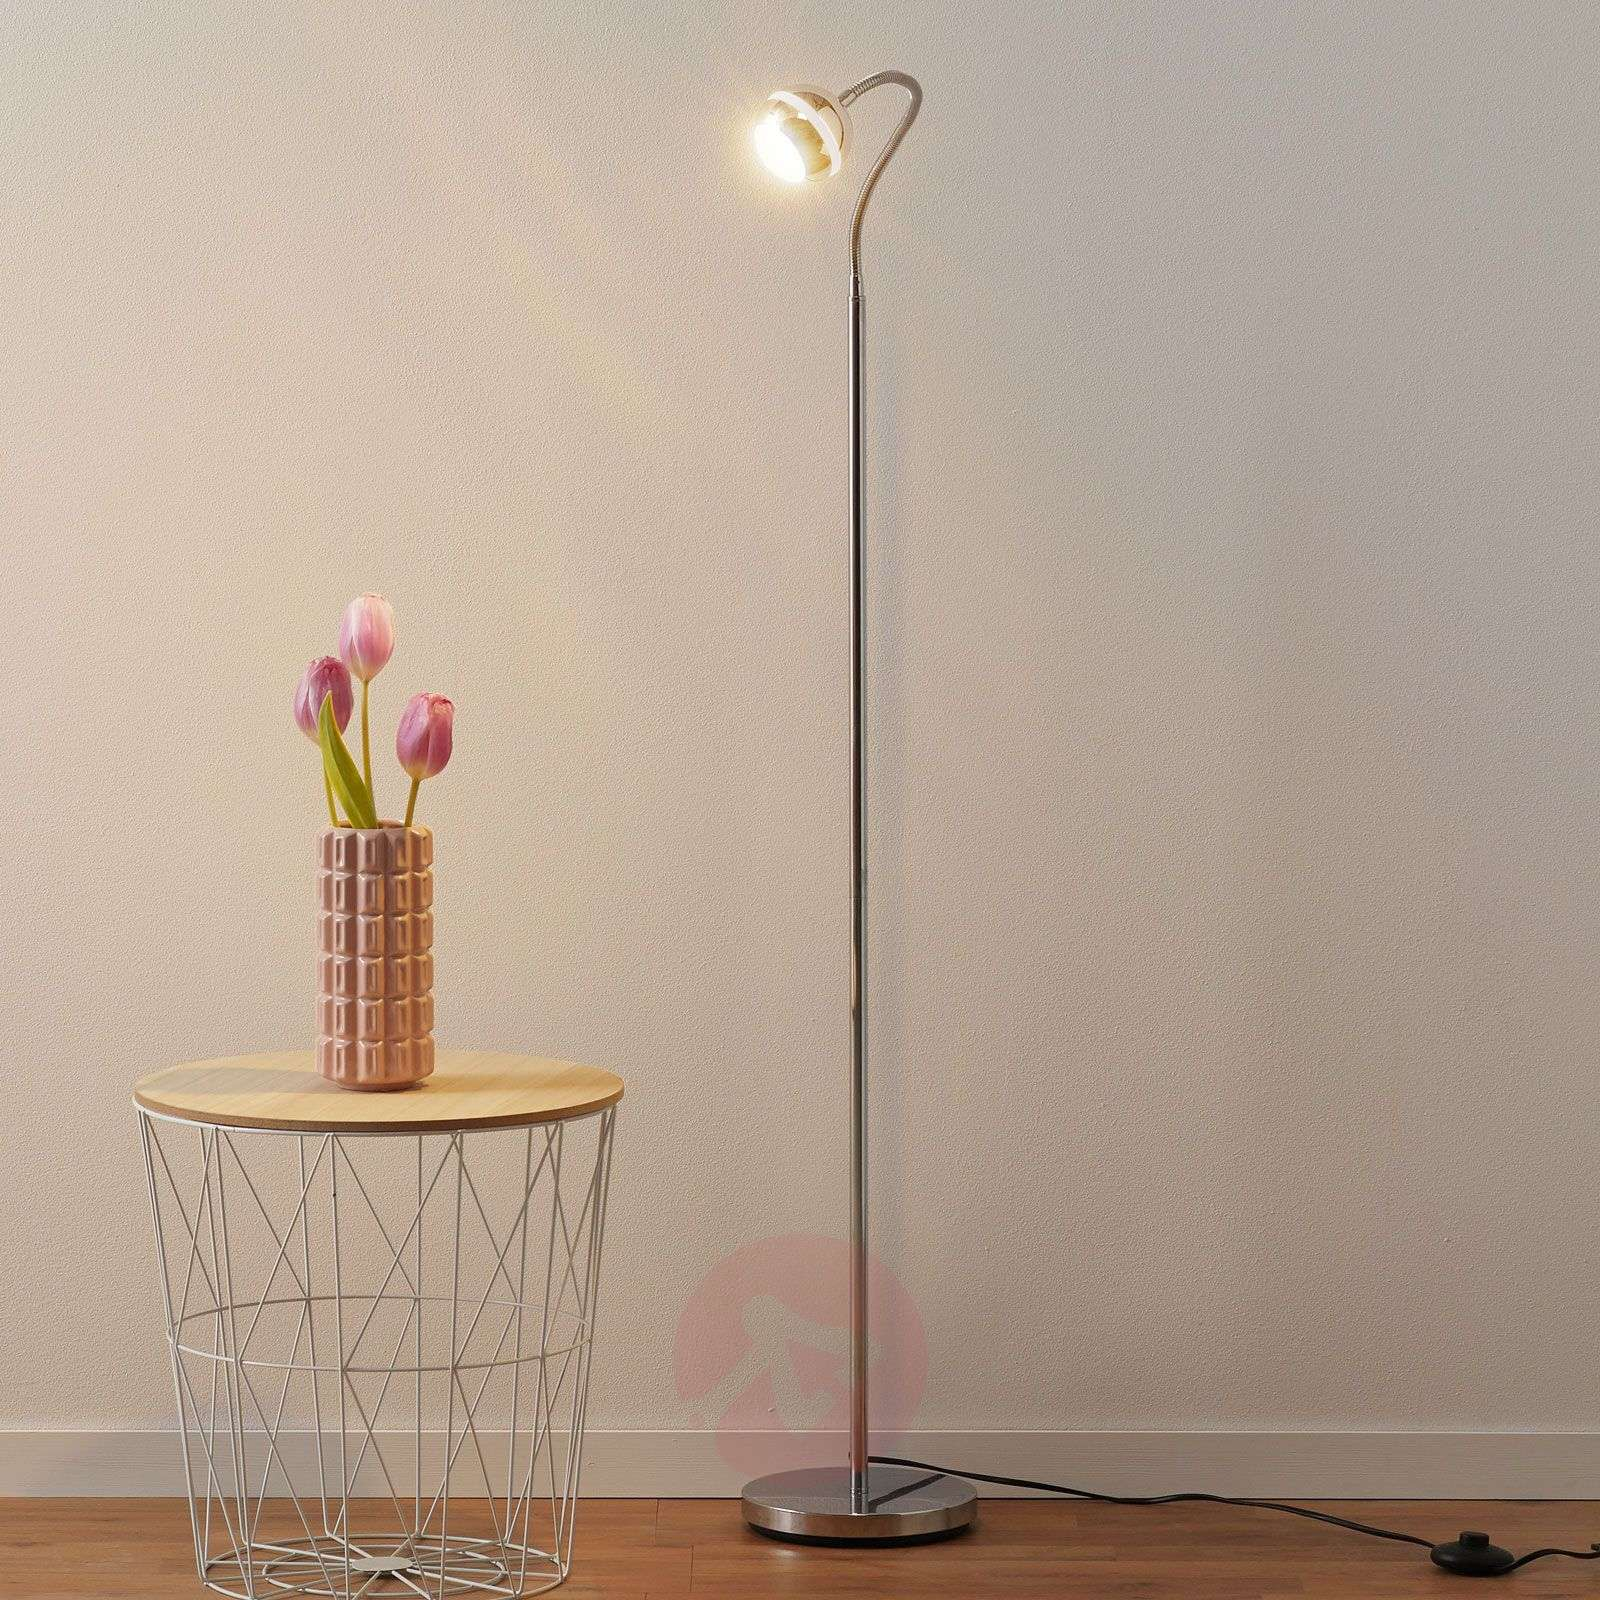 Narrow Ada LED floor lamp-9004580-01